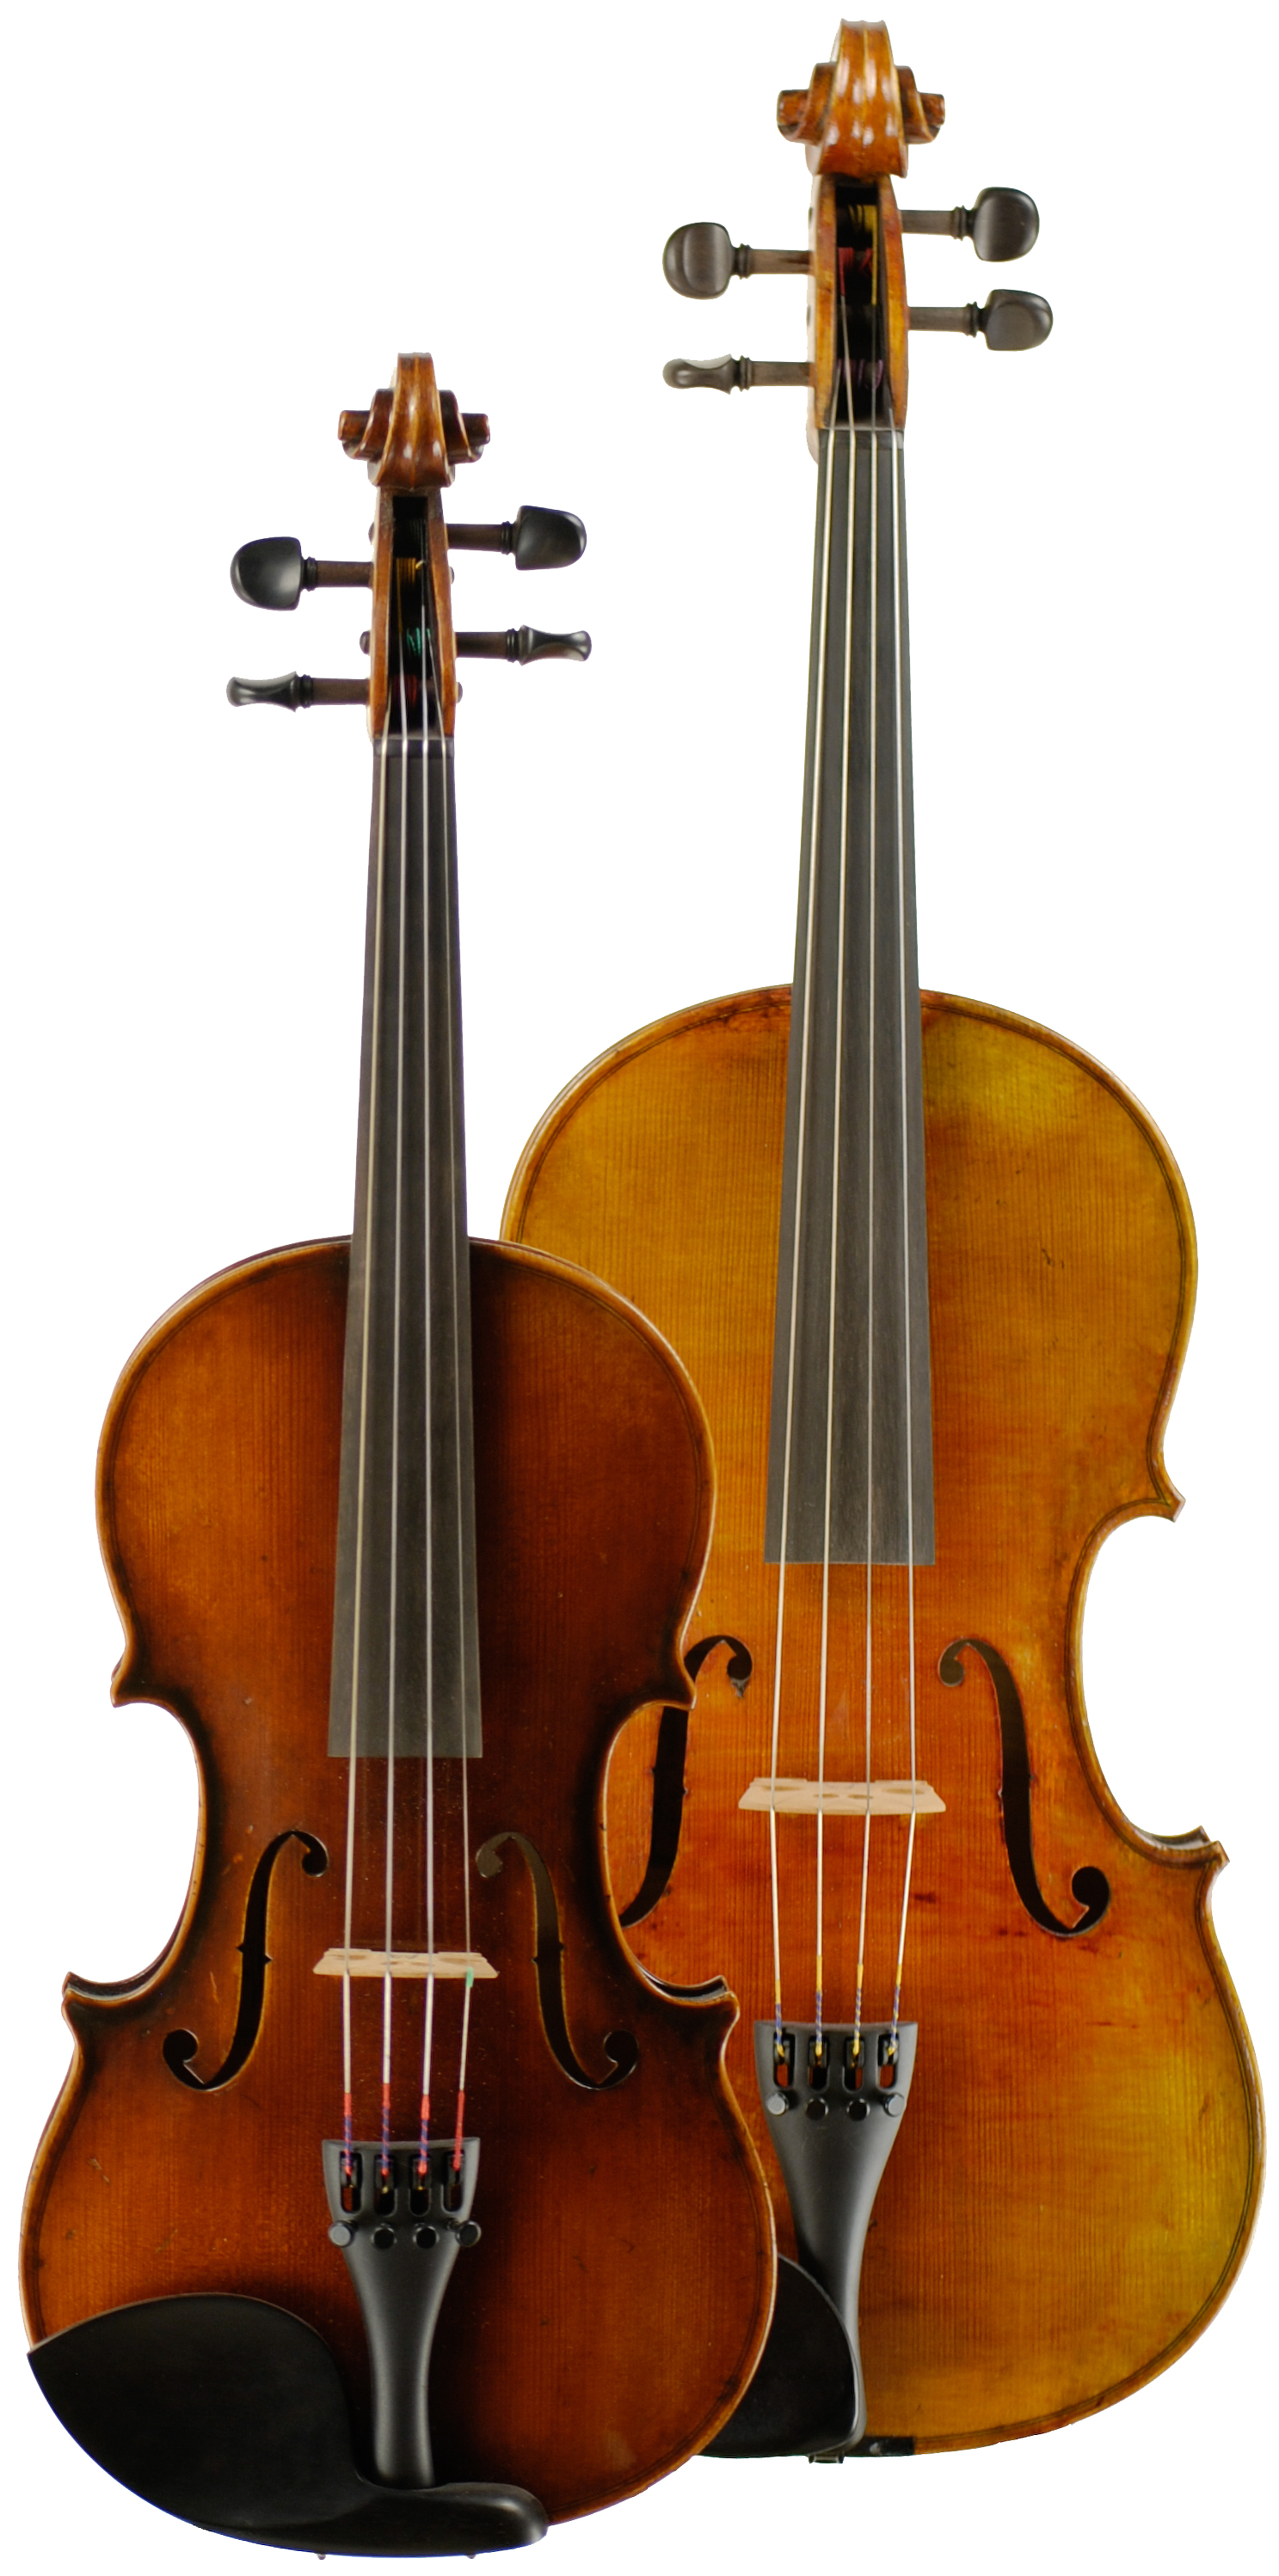 Trade Policy | J.R. Judd Violins